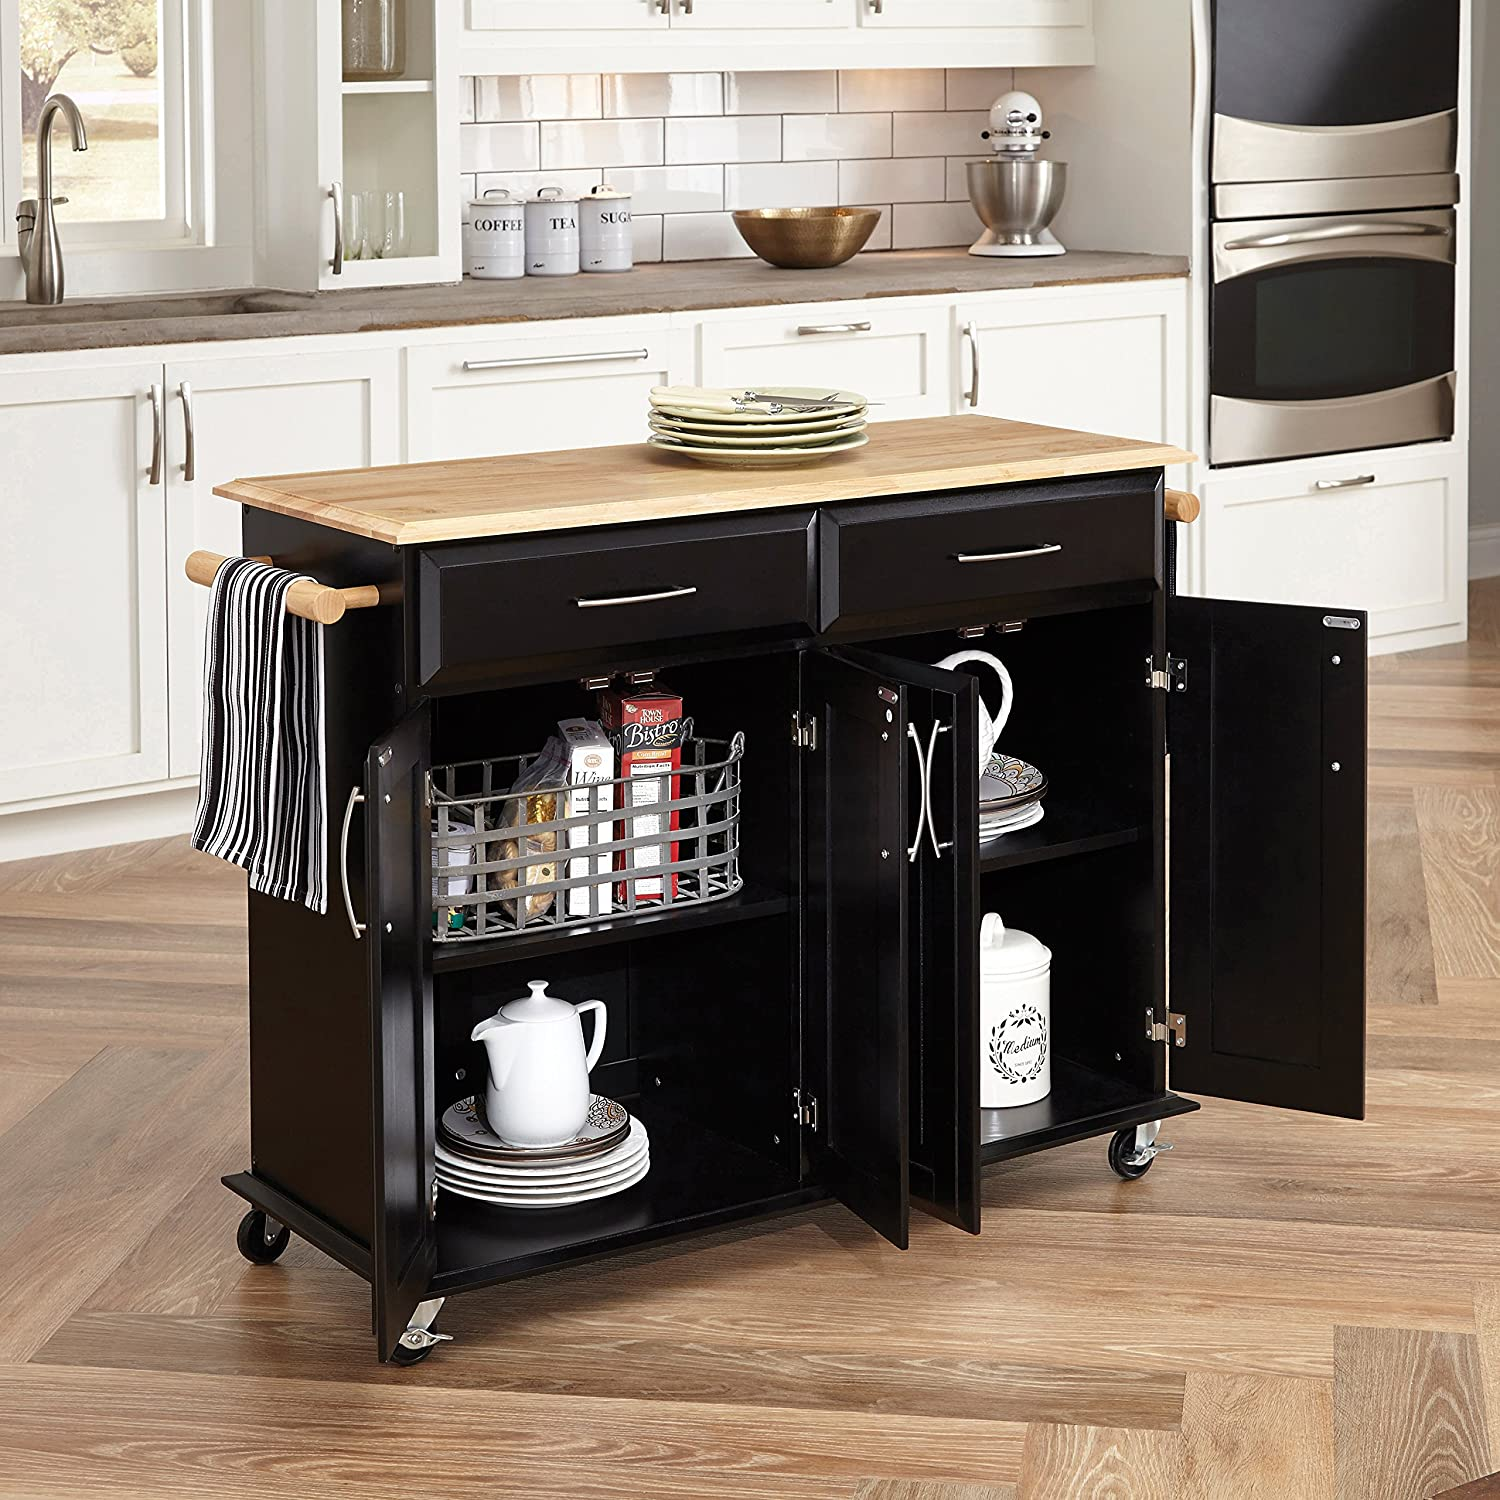 amazoncom home styles 4528 95 dolly madison kitchen cart black finish kitchen dining - Black Kitchen Island